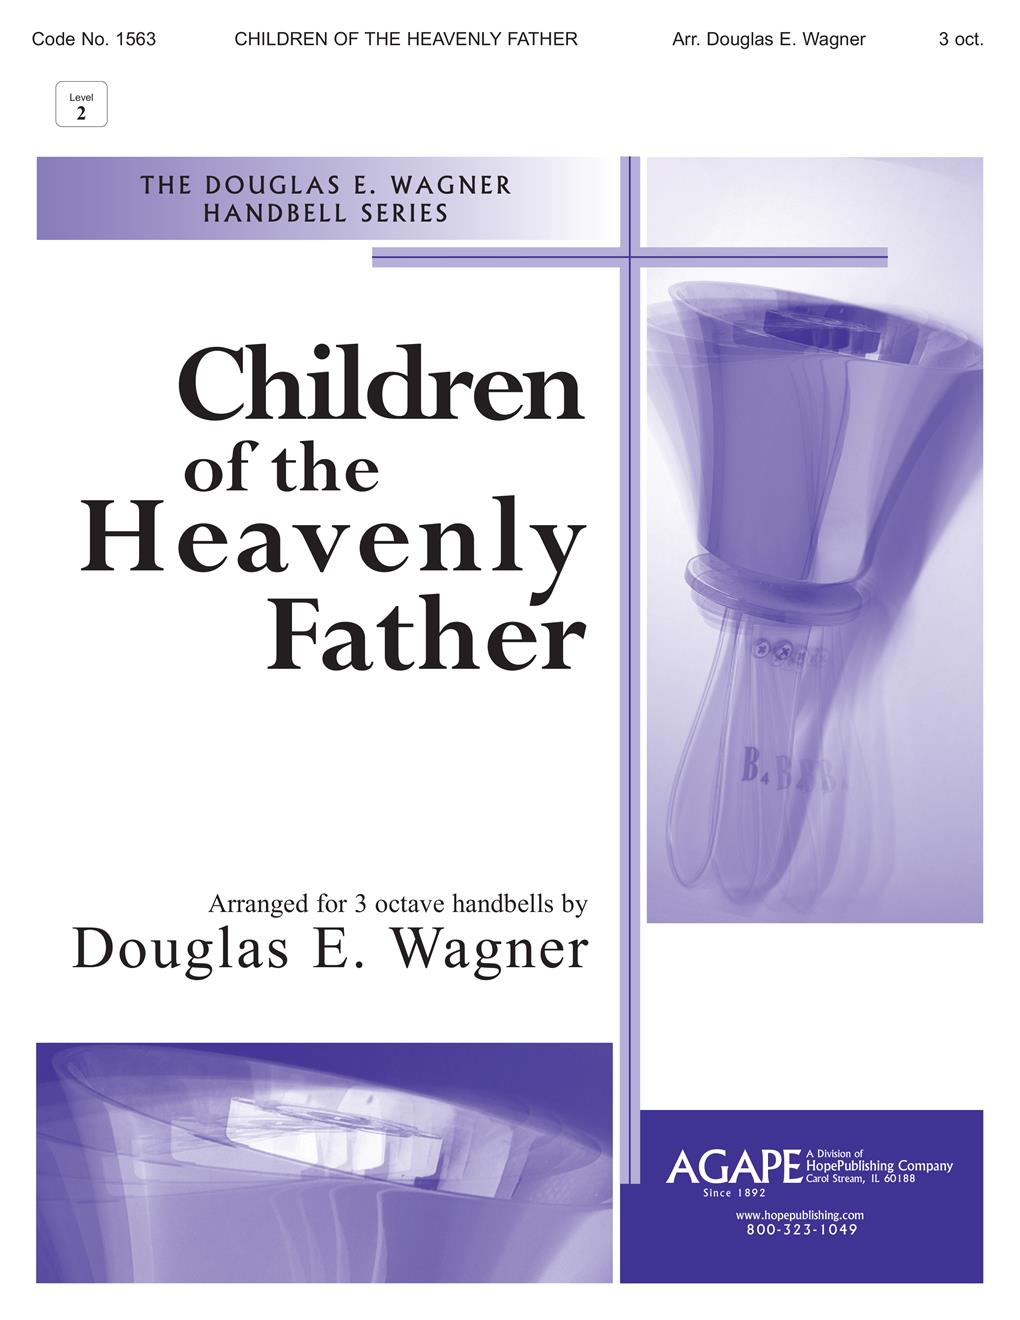 Children of the Heavenly Father - 3 Oct. Cover Image